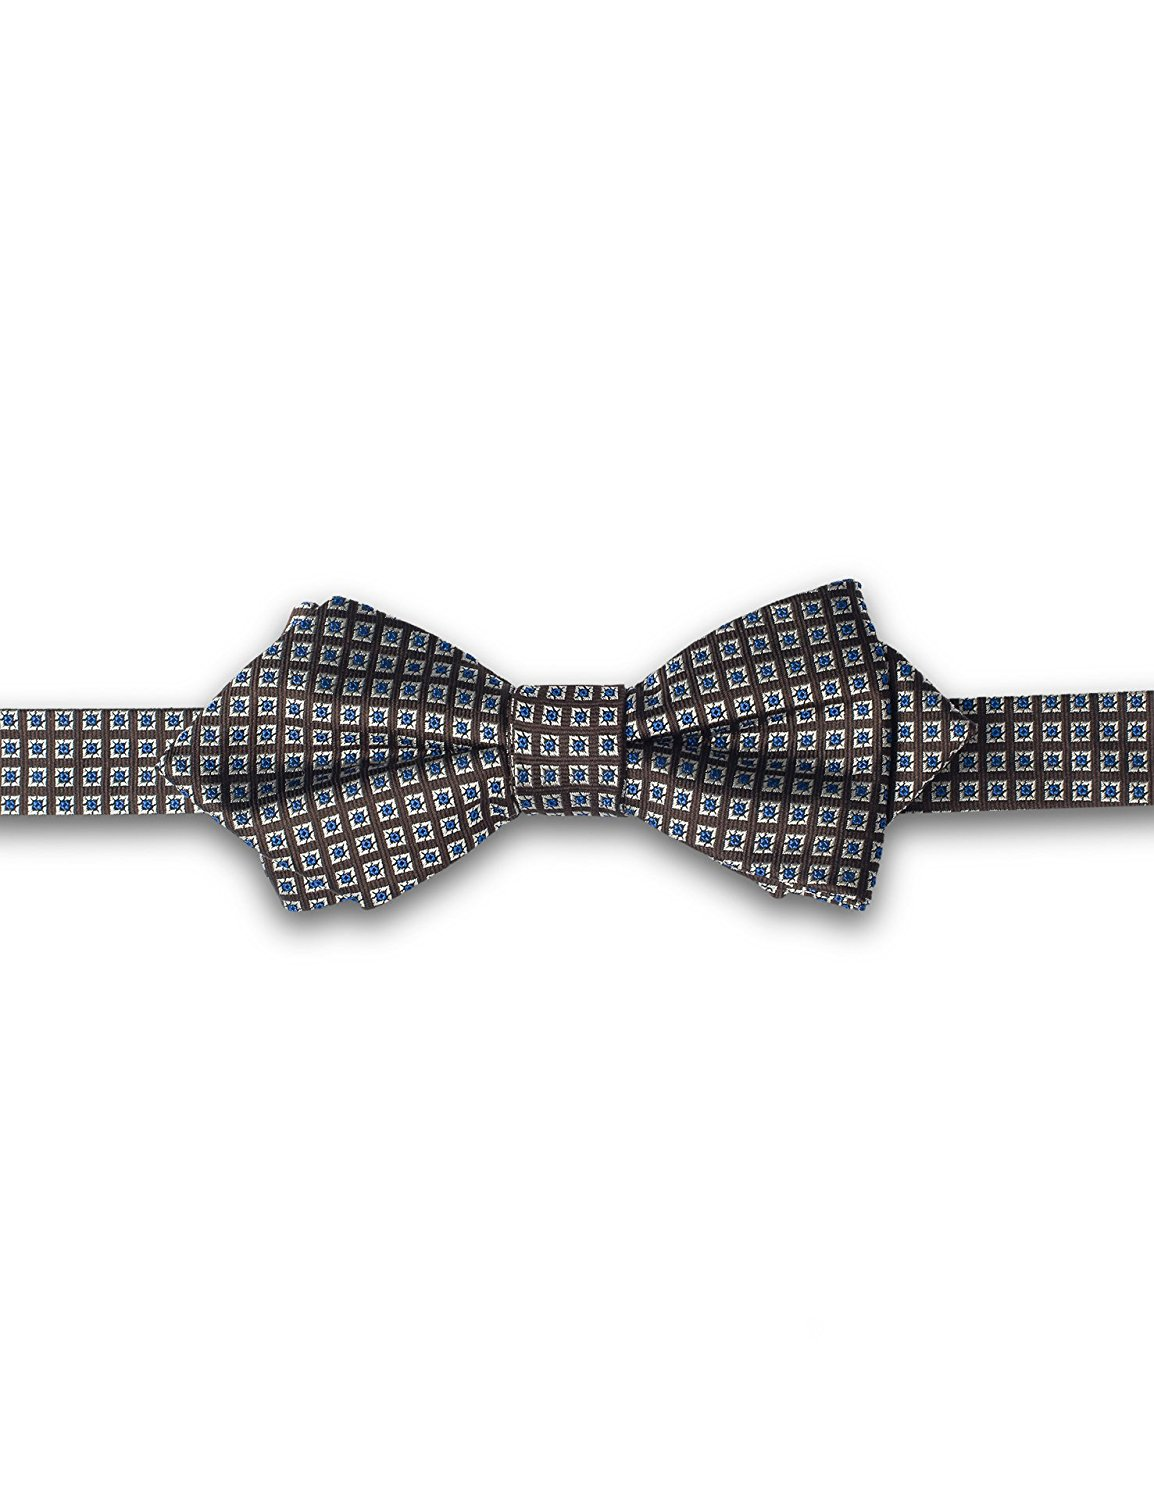 ST34 Brand New Navy Blue and Beige Polka dots Tuxedo Bow ties for Men Bow tie and Pocket square SET BB-883